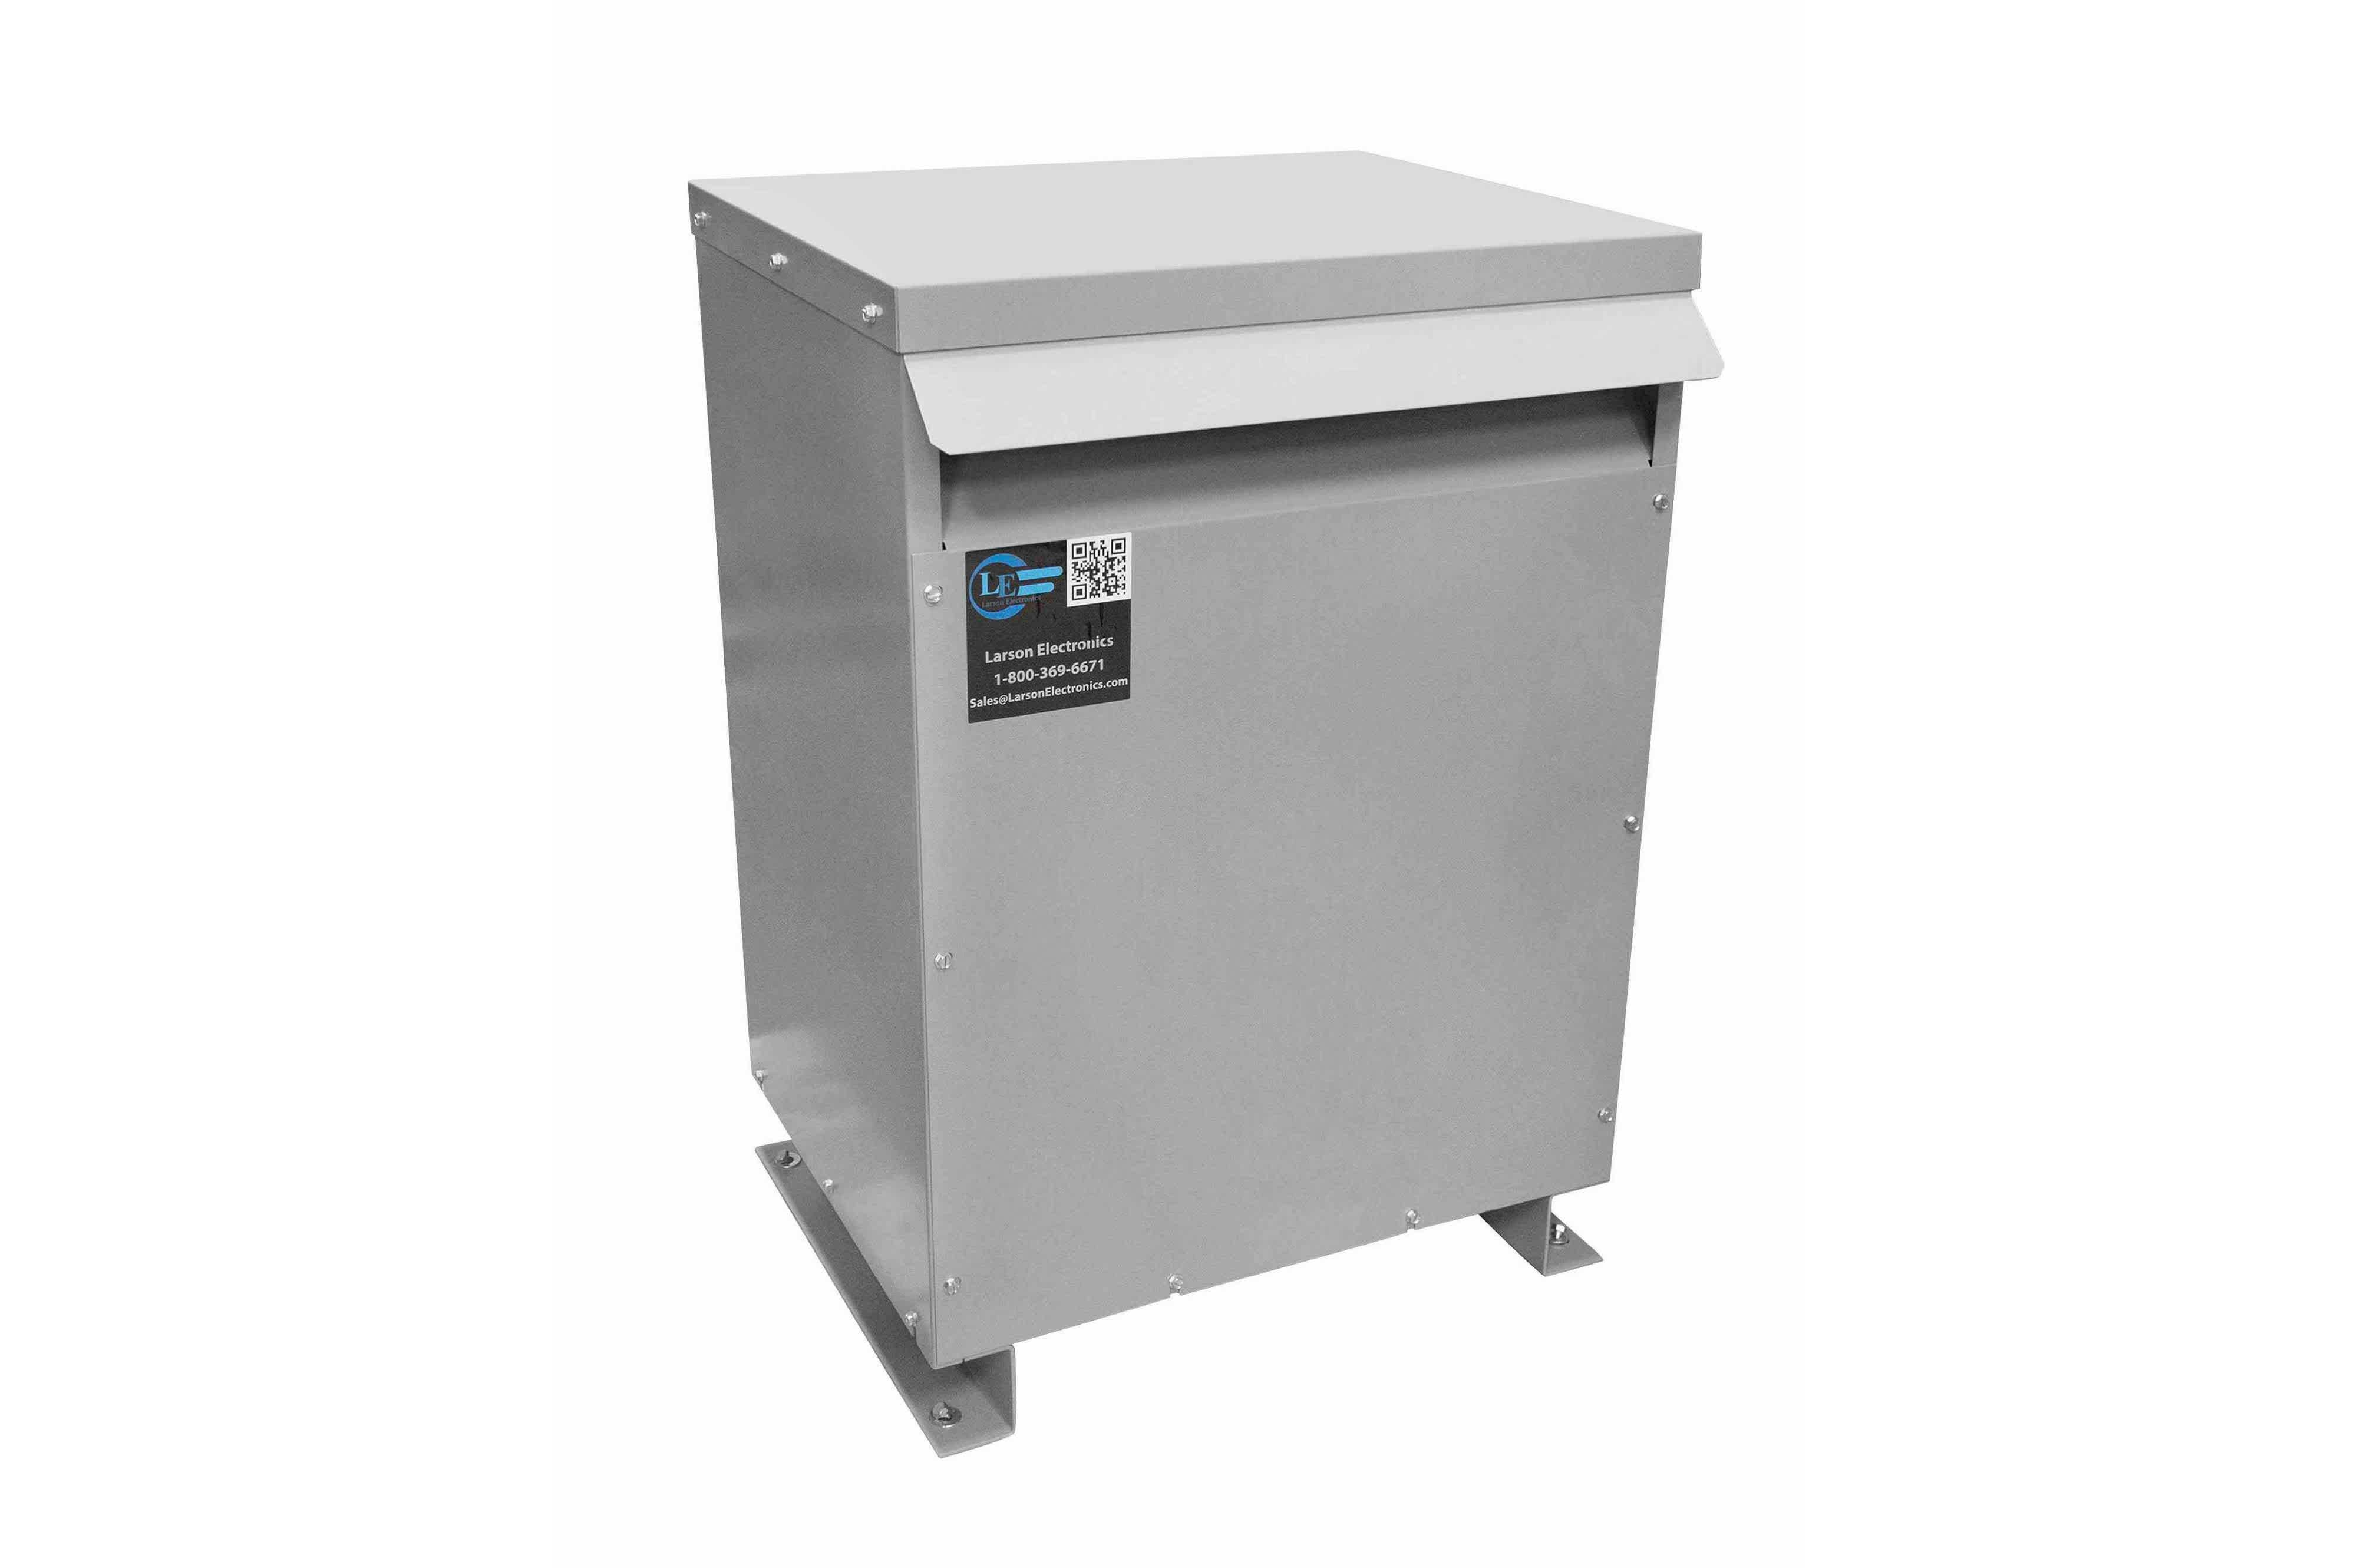 500 kVA 3PH Isolation Transformer, 460V Delta Primary, 400V Delta Secondary, N3R, Ventilated, 60 Hz